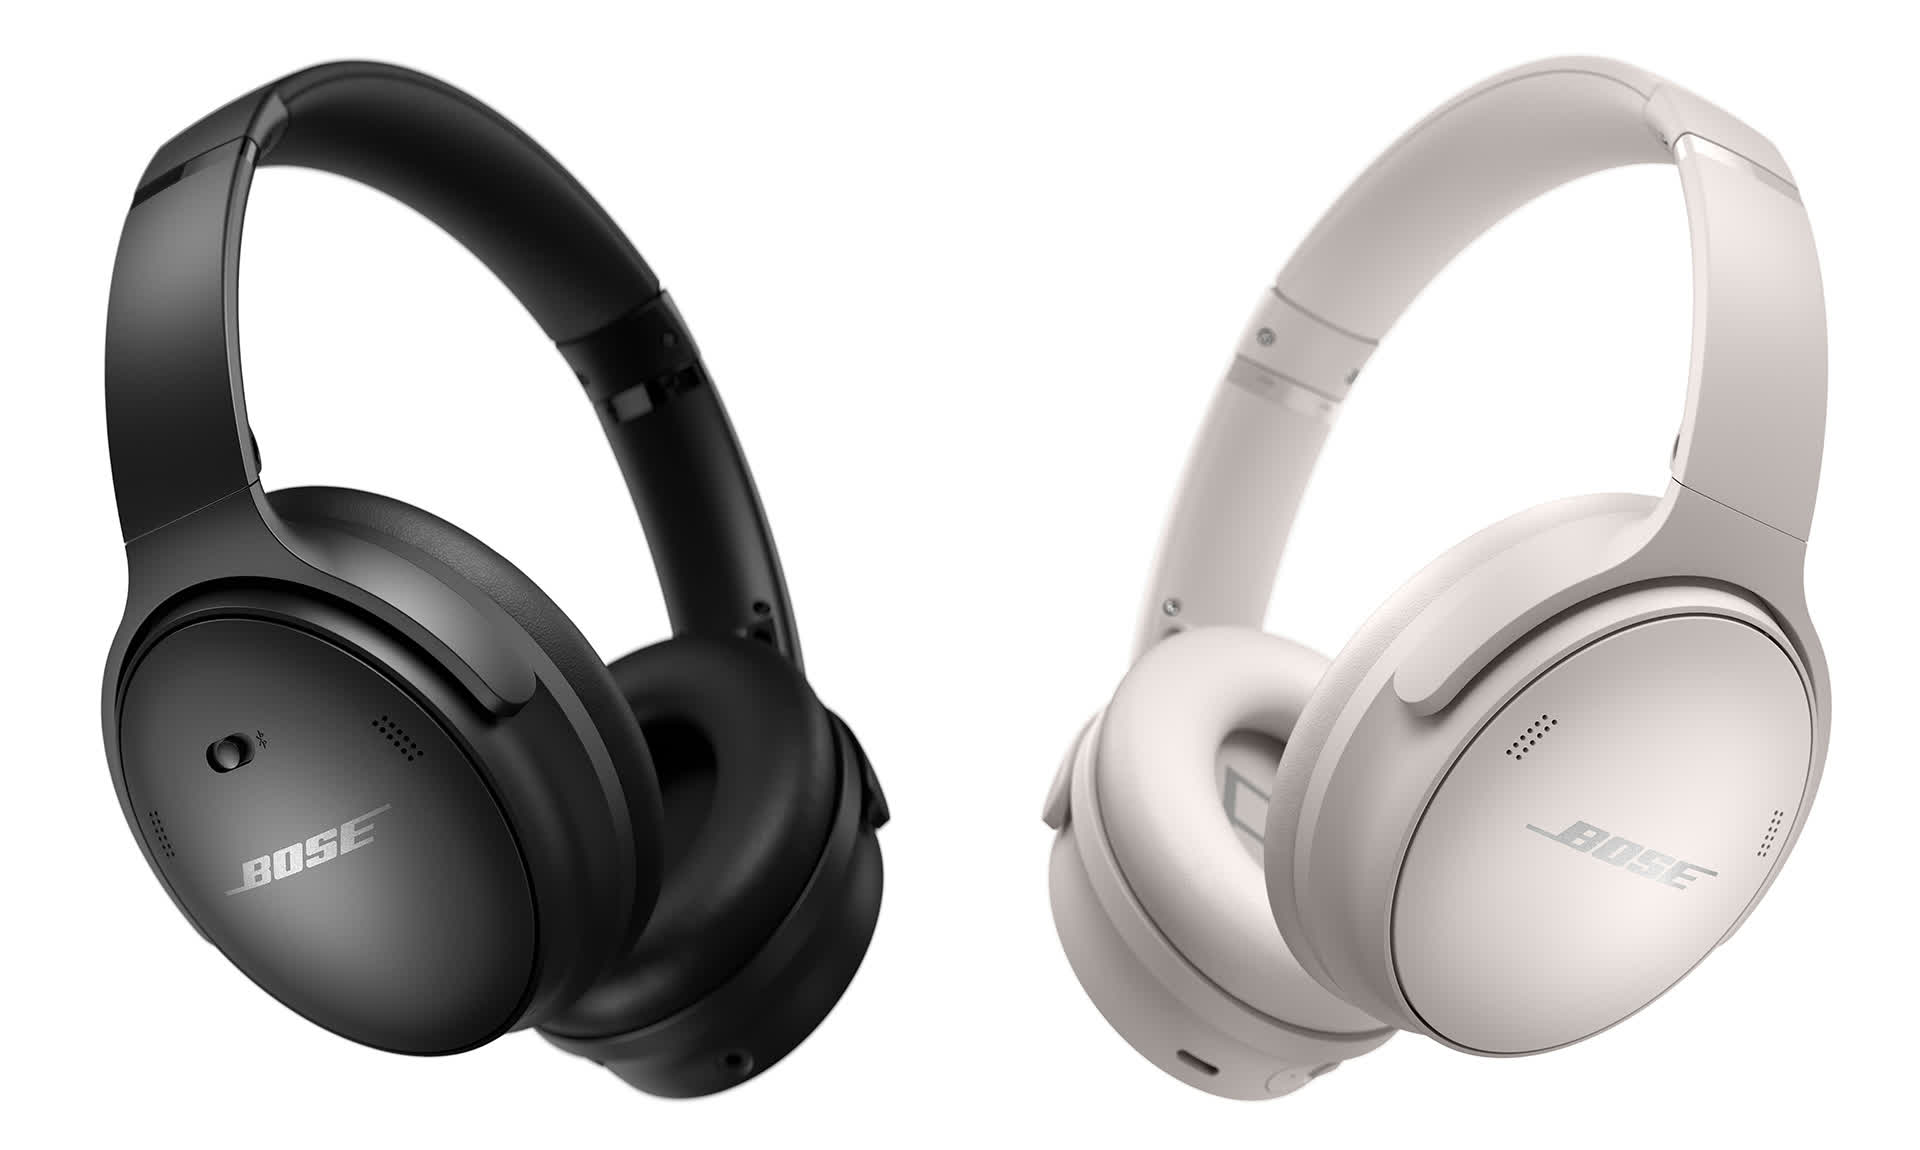 Bose's new QuietComfort 45 is a small, but welcome upgrade to the QuietComfort 35 II